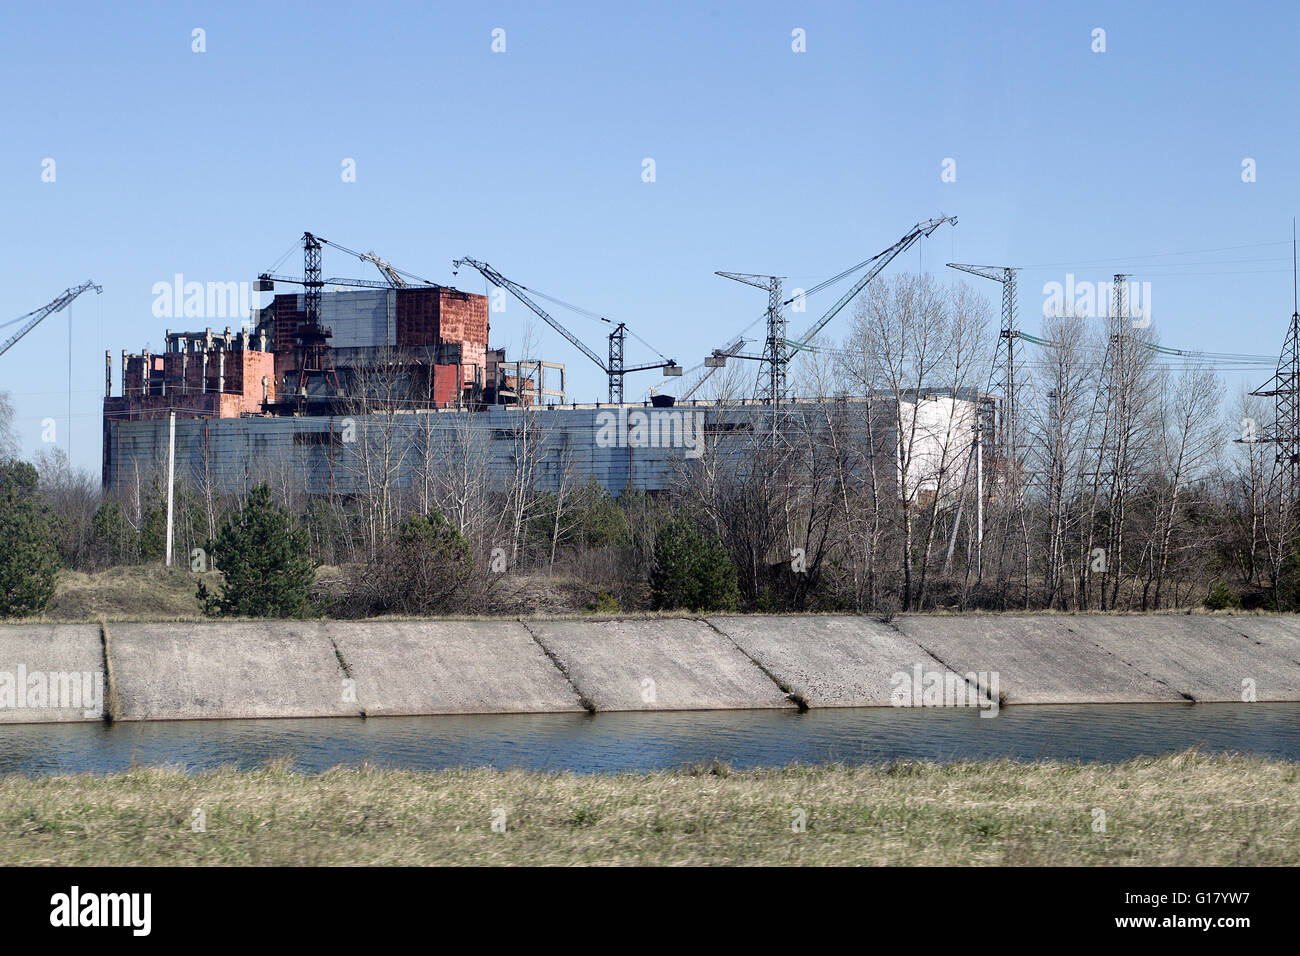 Nuclear Power Plant Chernobyl, unfinished Reactor 5 and 6 - Stock Image